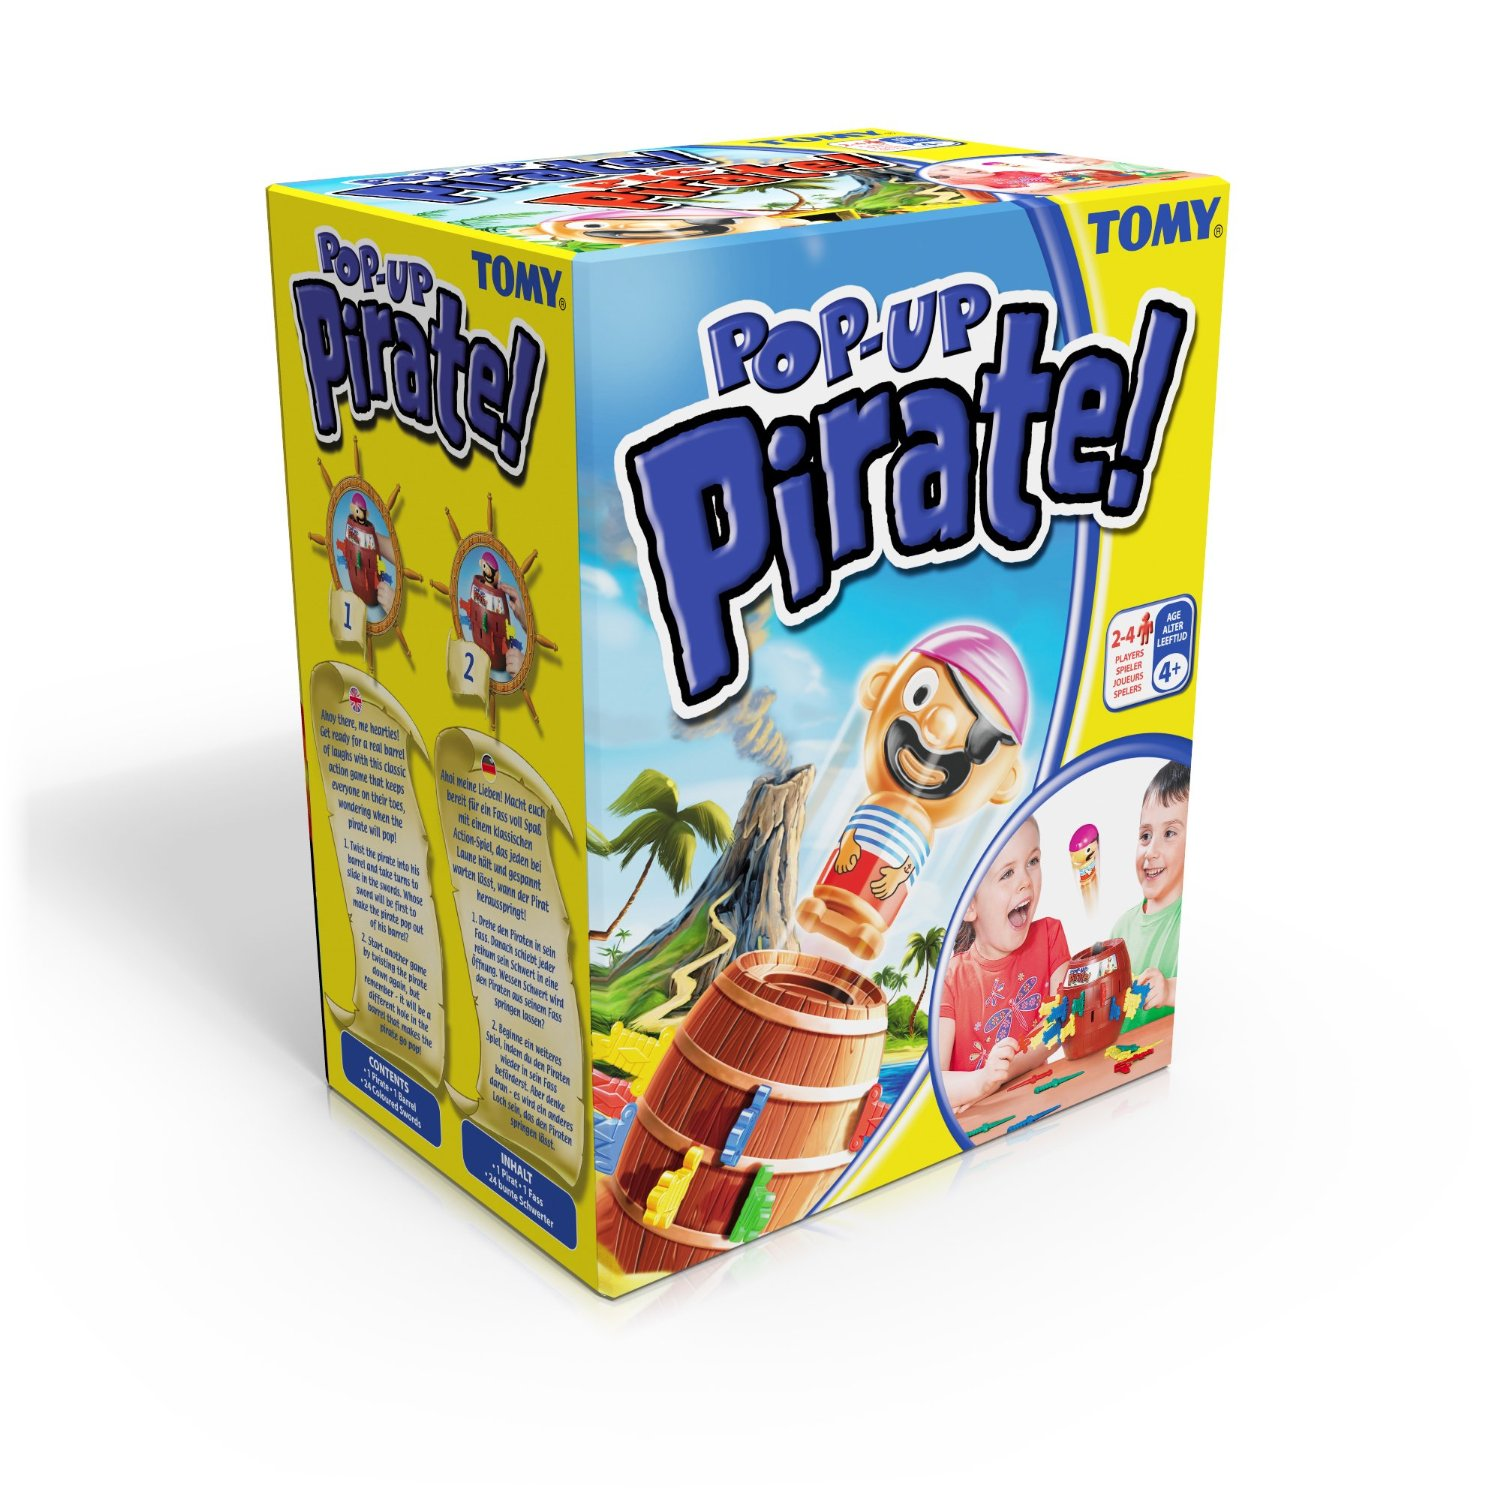 Tomy Pop-Up Pirate Games